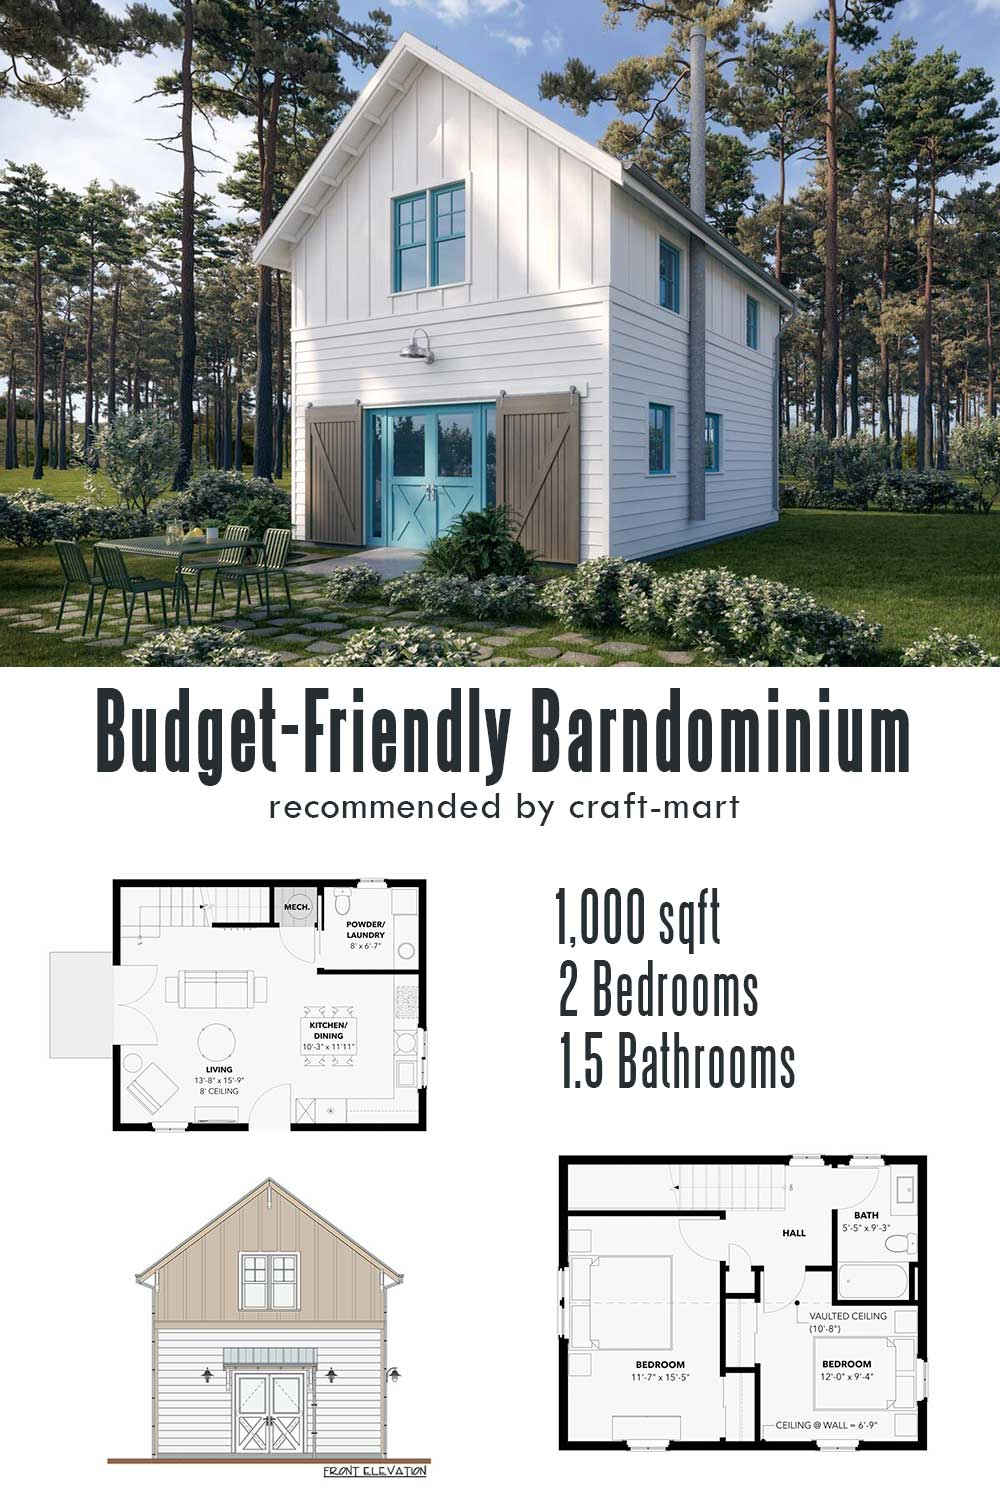 Cozy Budget-Friendly Barndominium Cottage